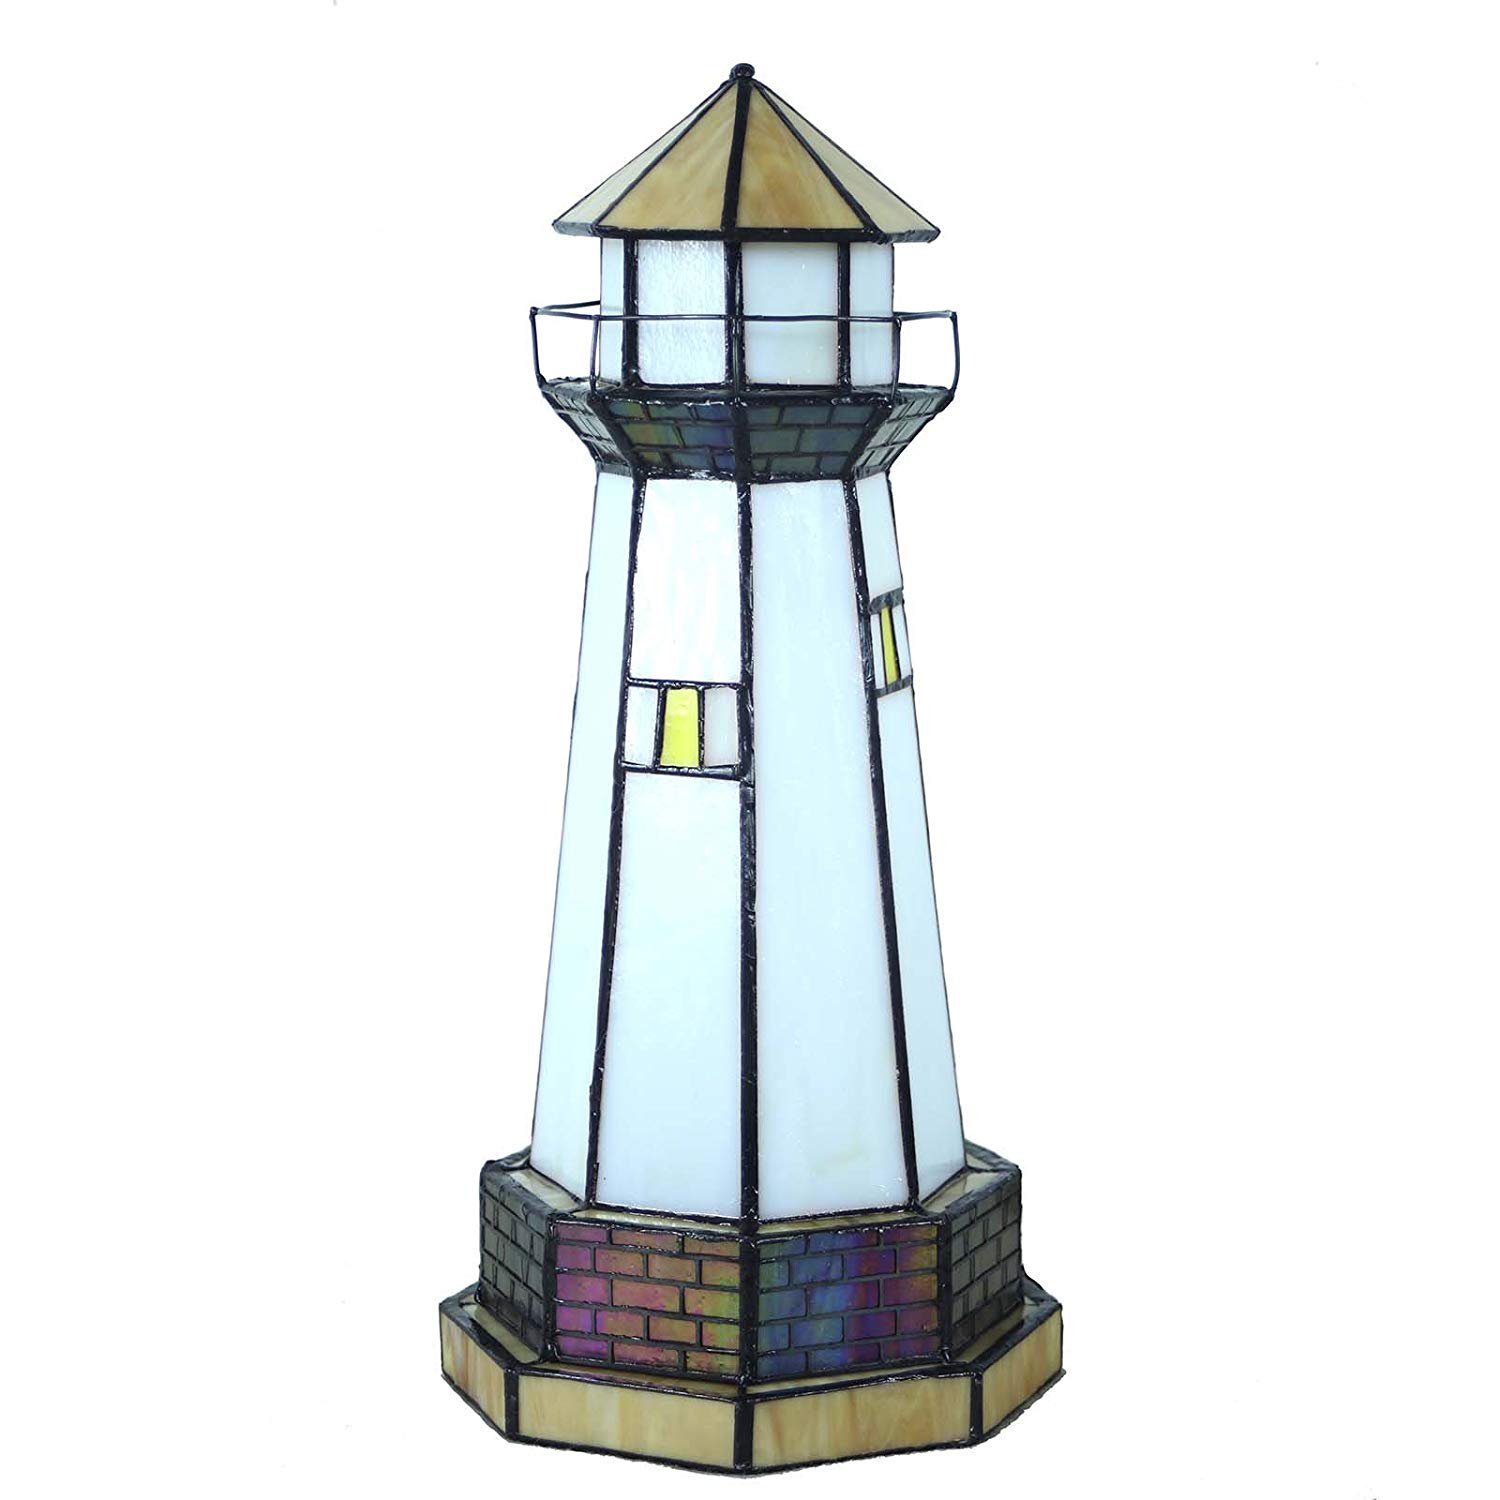 bieye inch lighthouse tiffany style stained glass accent table lamp night light tulip oval garden furniture covers teal kitchen decor nautical pendant lights for island outdoor